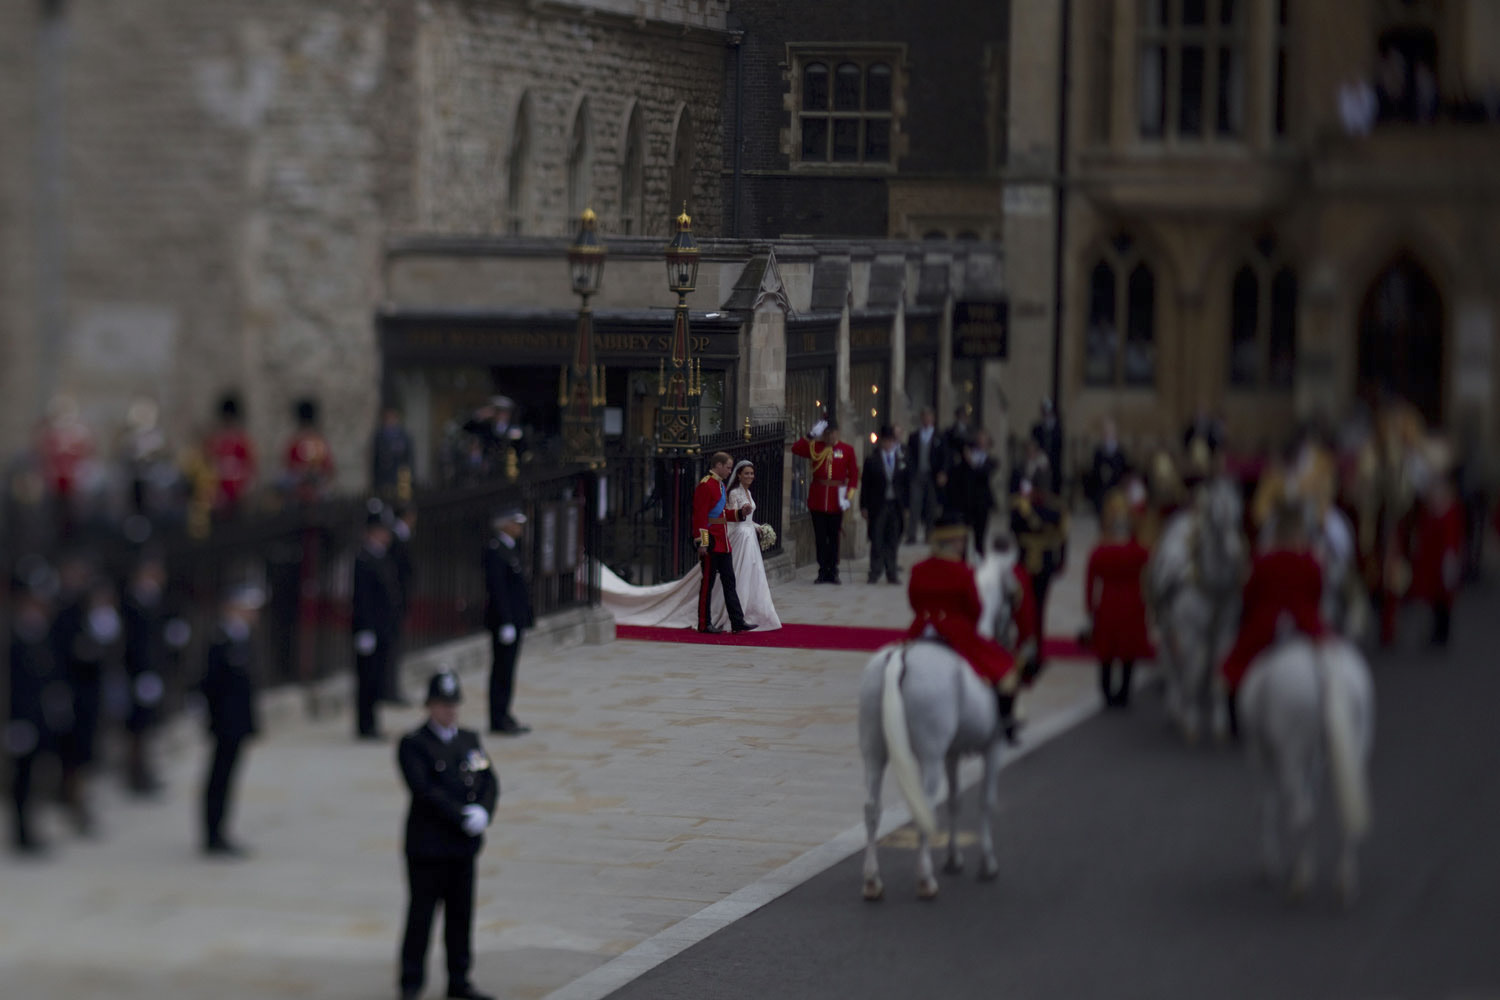 April 29, 2011. Prince William and Kate Middleton tie the knot at Westminster Abbey in London.